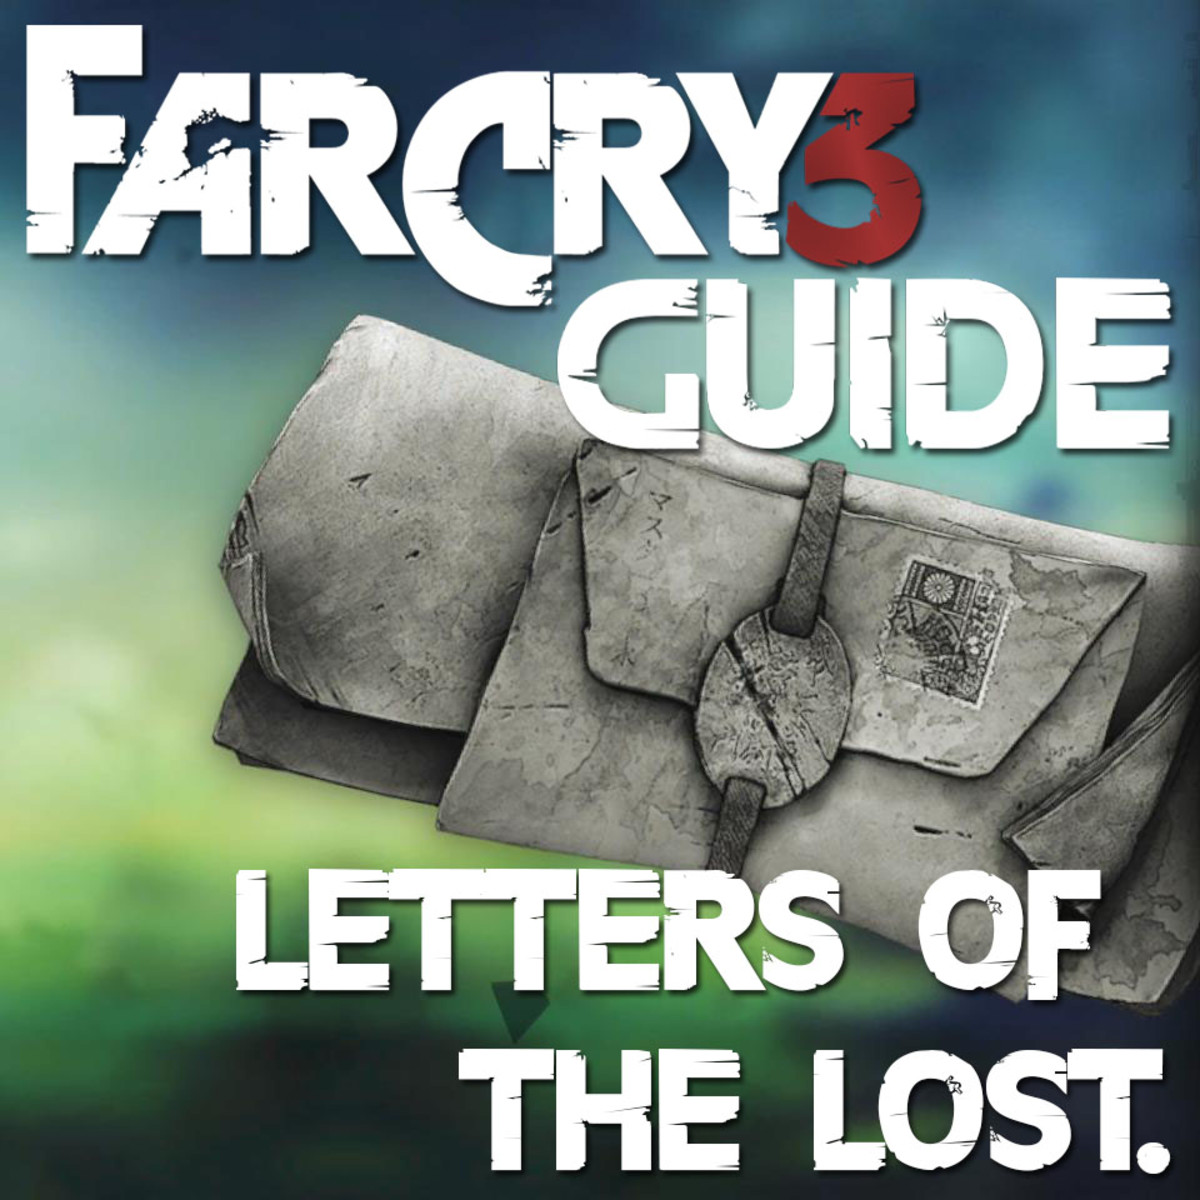 Letters of the Lost: Dead Letters achievement.